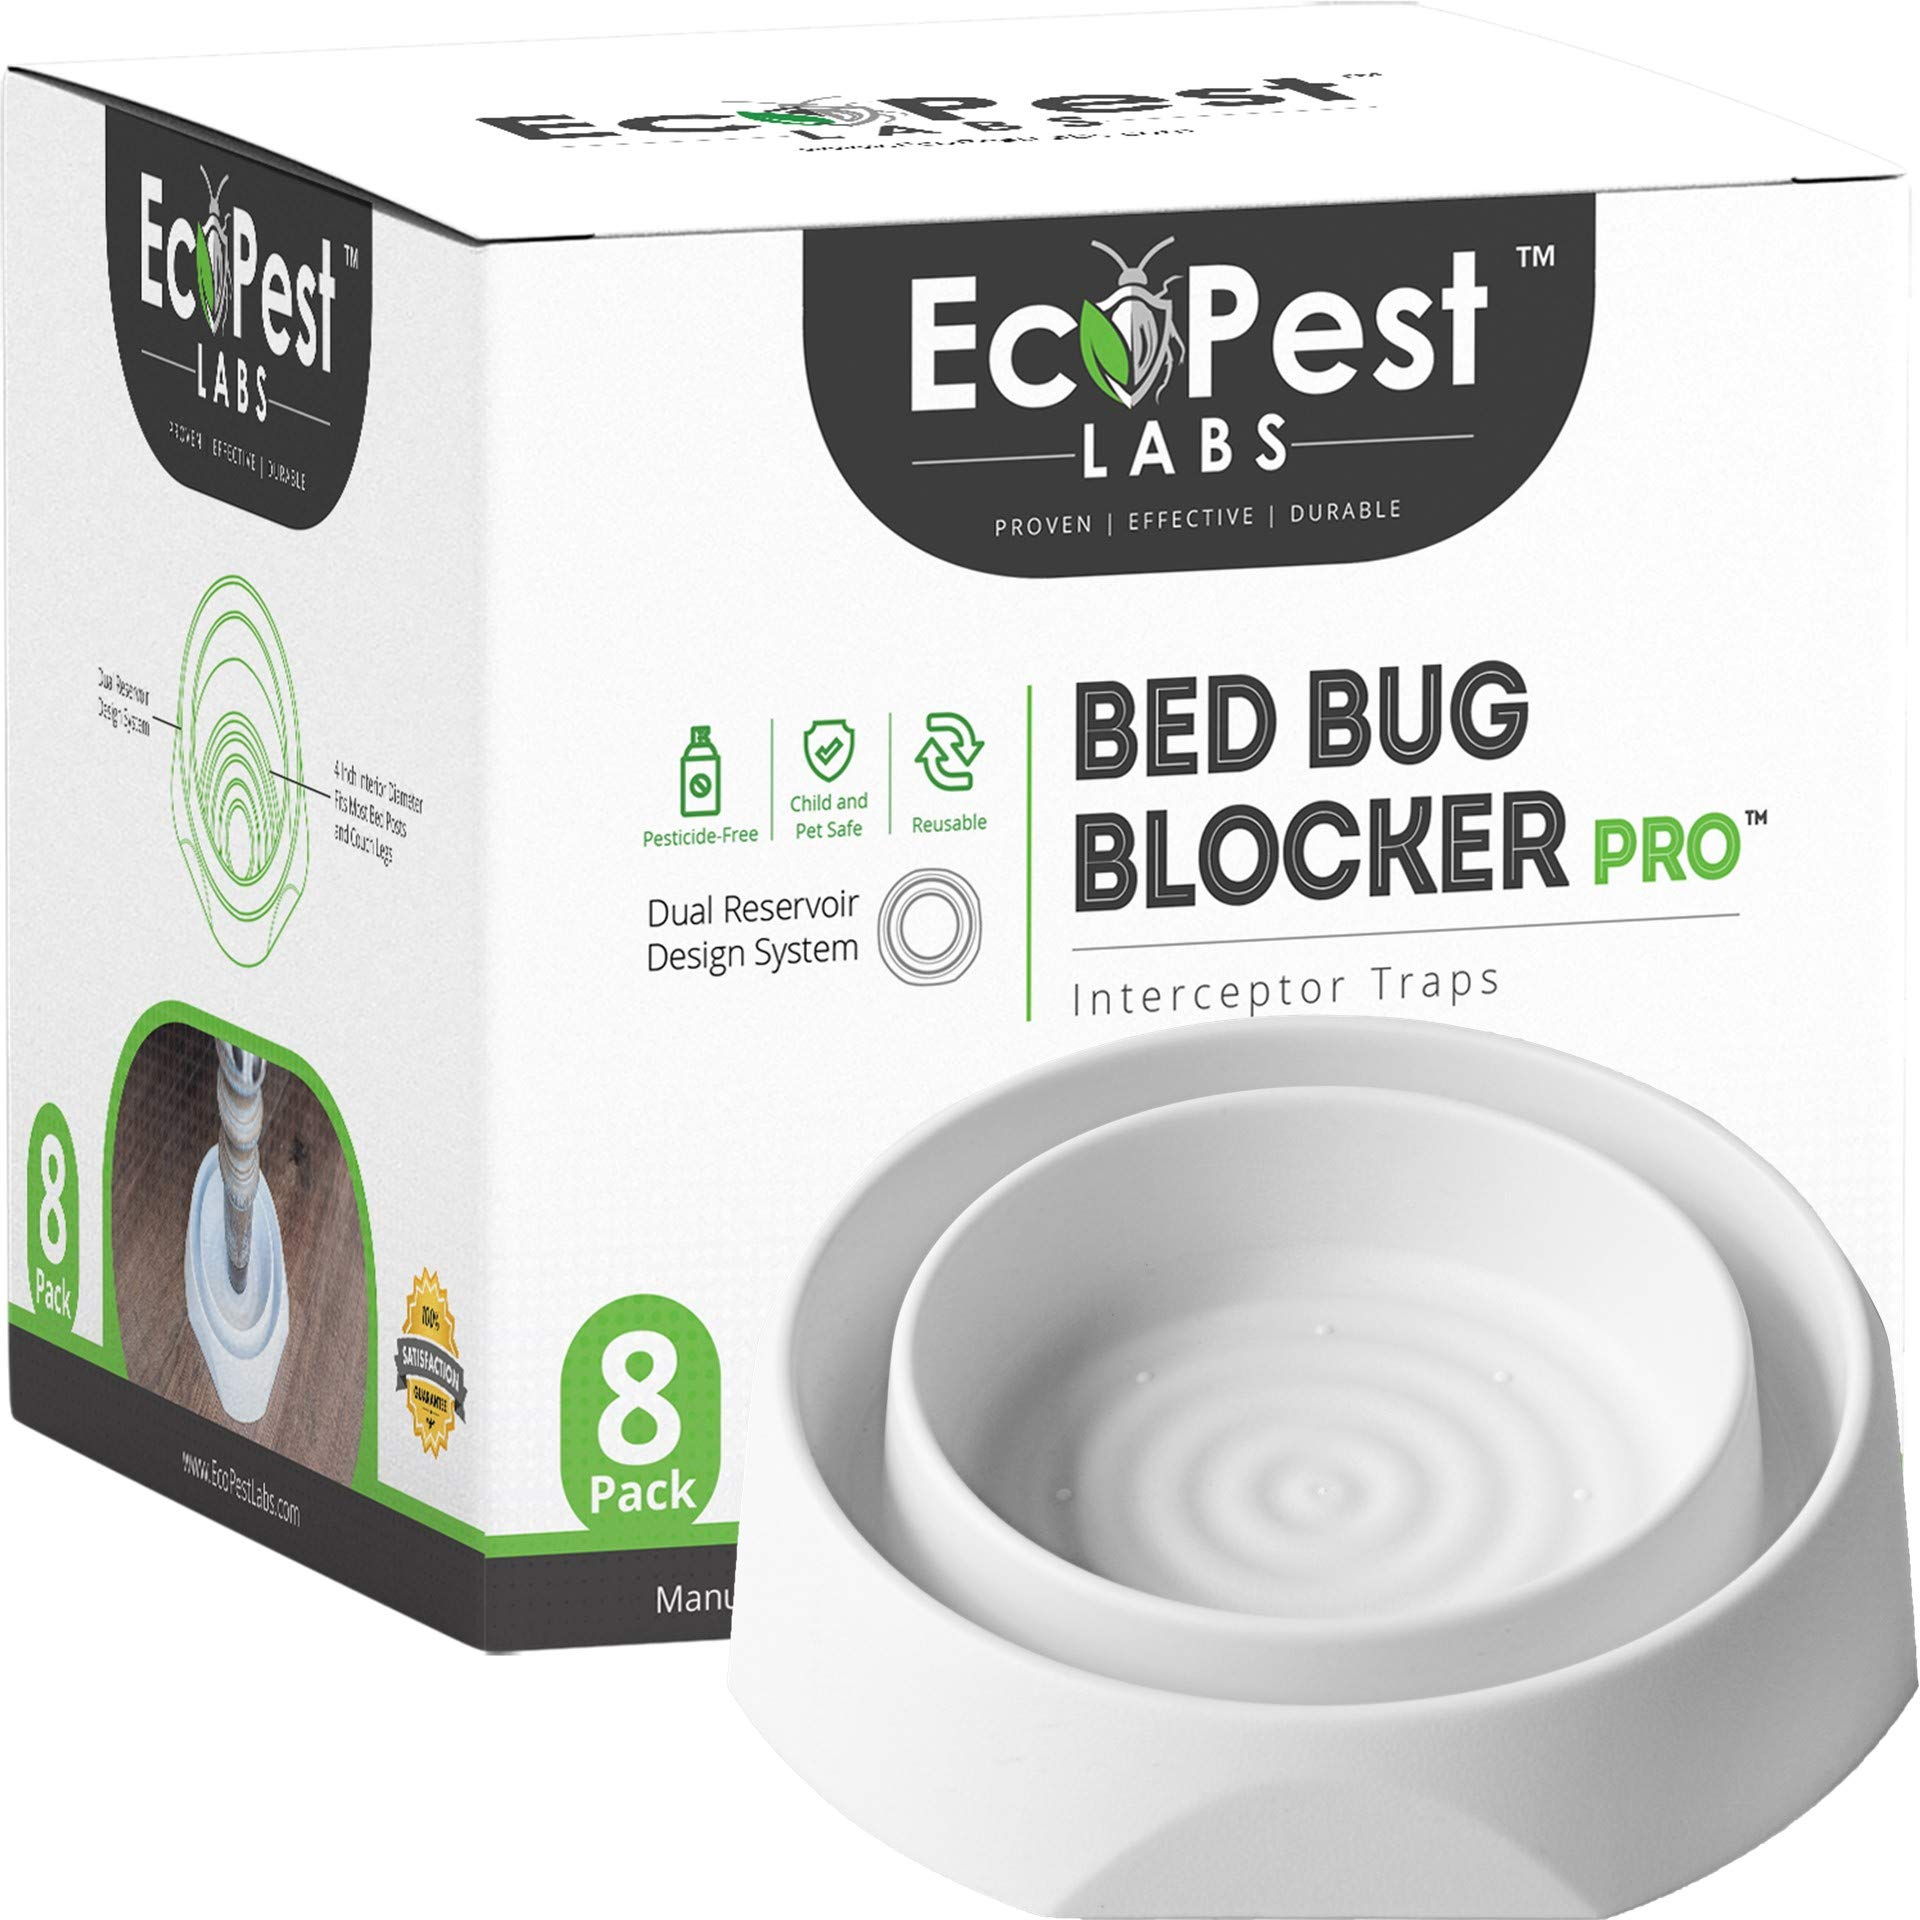 Bed Bug Interceptors - 8 Pack | Bed Bug Blocker (Pro) Interceptor Traps (White) | Eco Friendly Insect Trap for Bed Legs | No Chemicals or Pesticides | Monitor, Detector, and Trap for Bed Bugs by EcoPest Labs